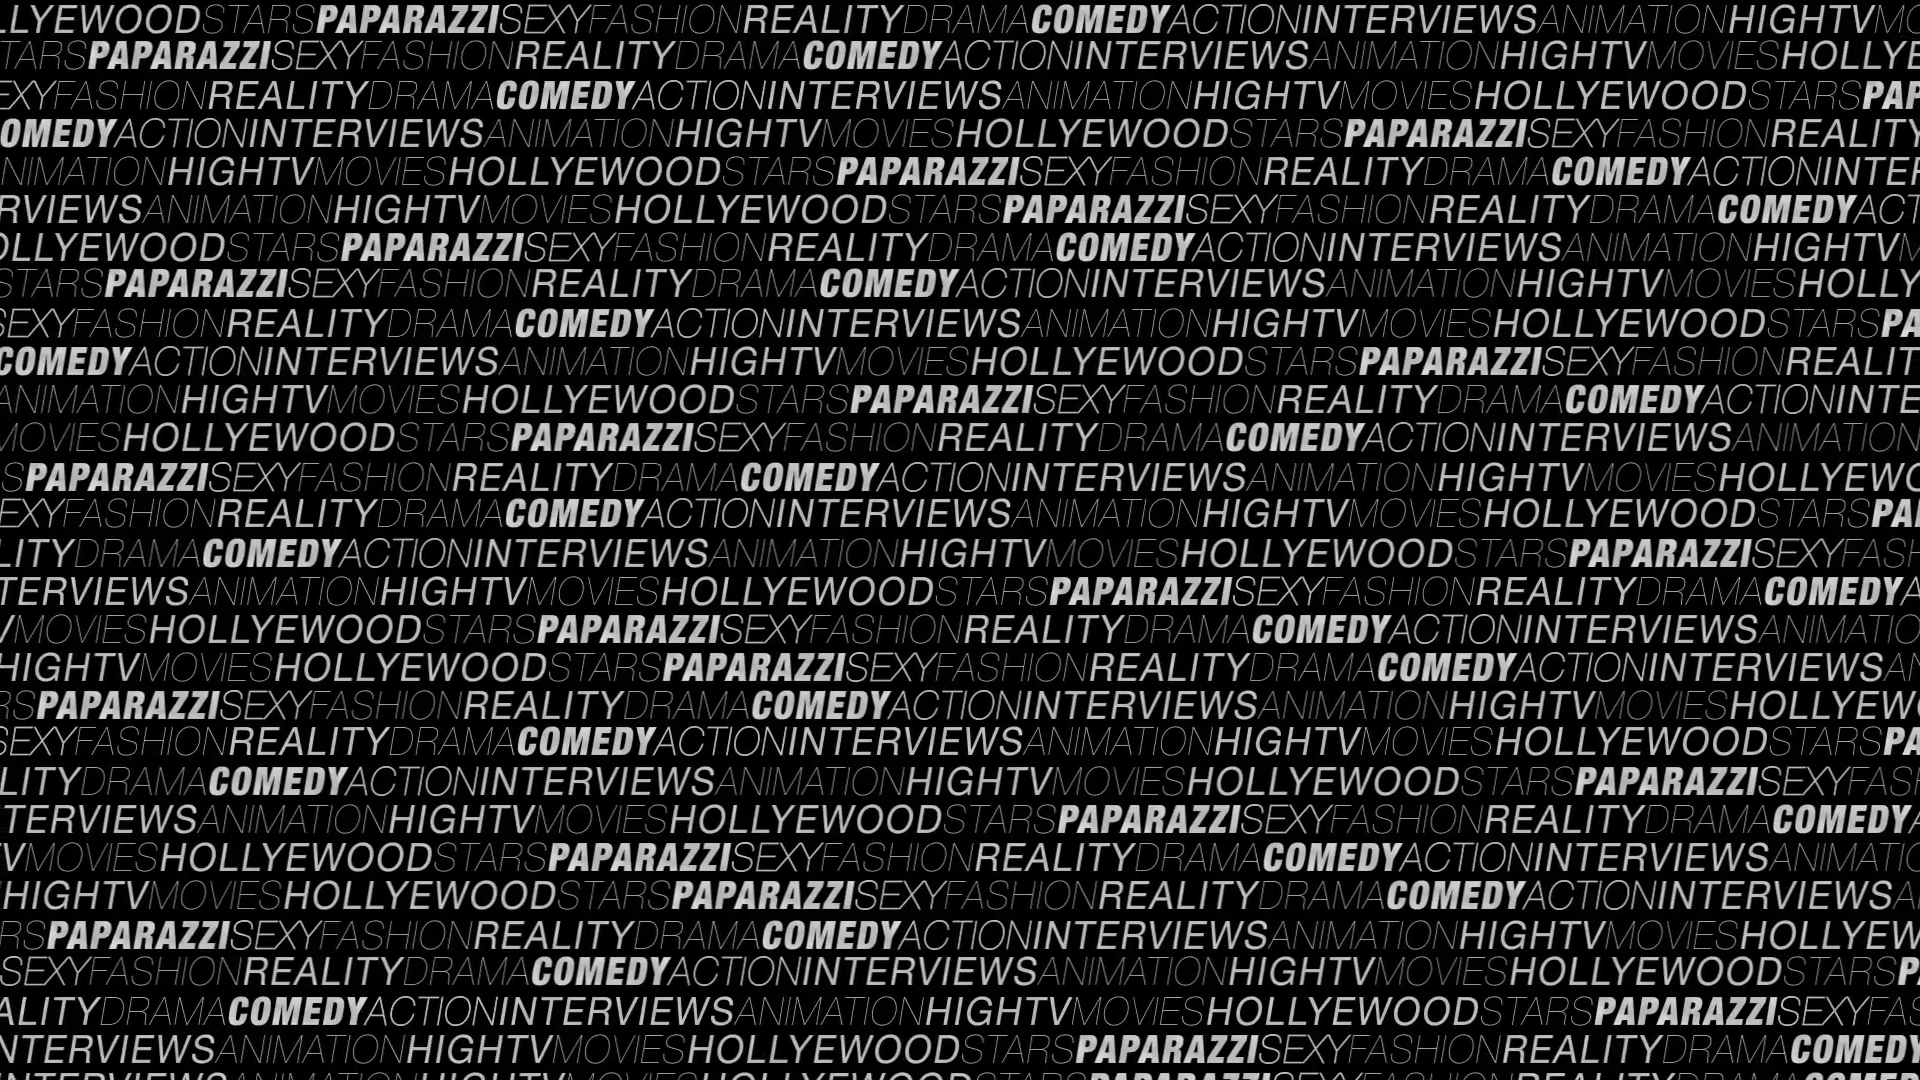 Glamour Paparazzi Words Background Motion Background   Storyblocks 1920x1080